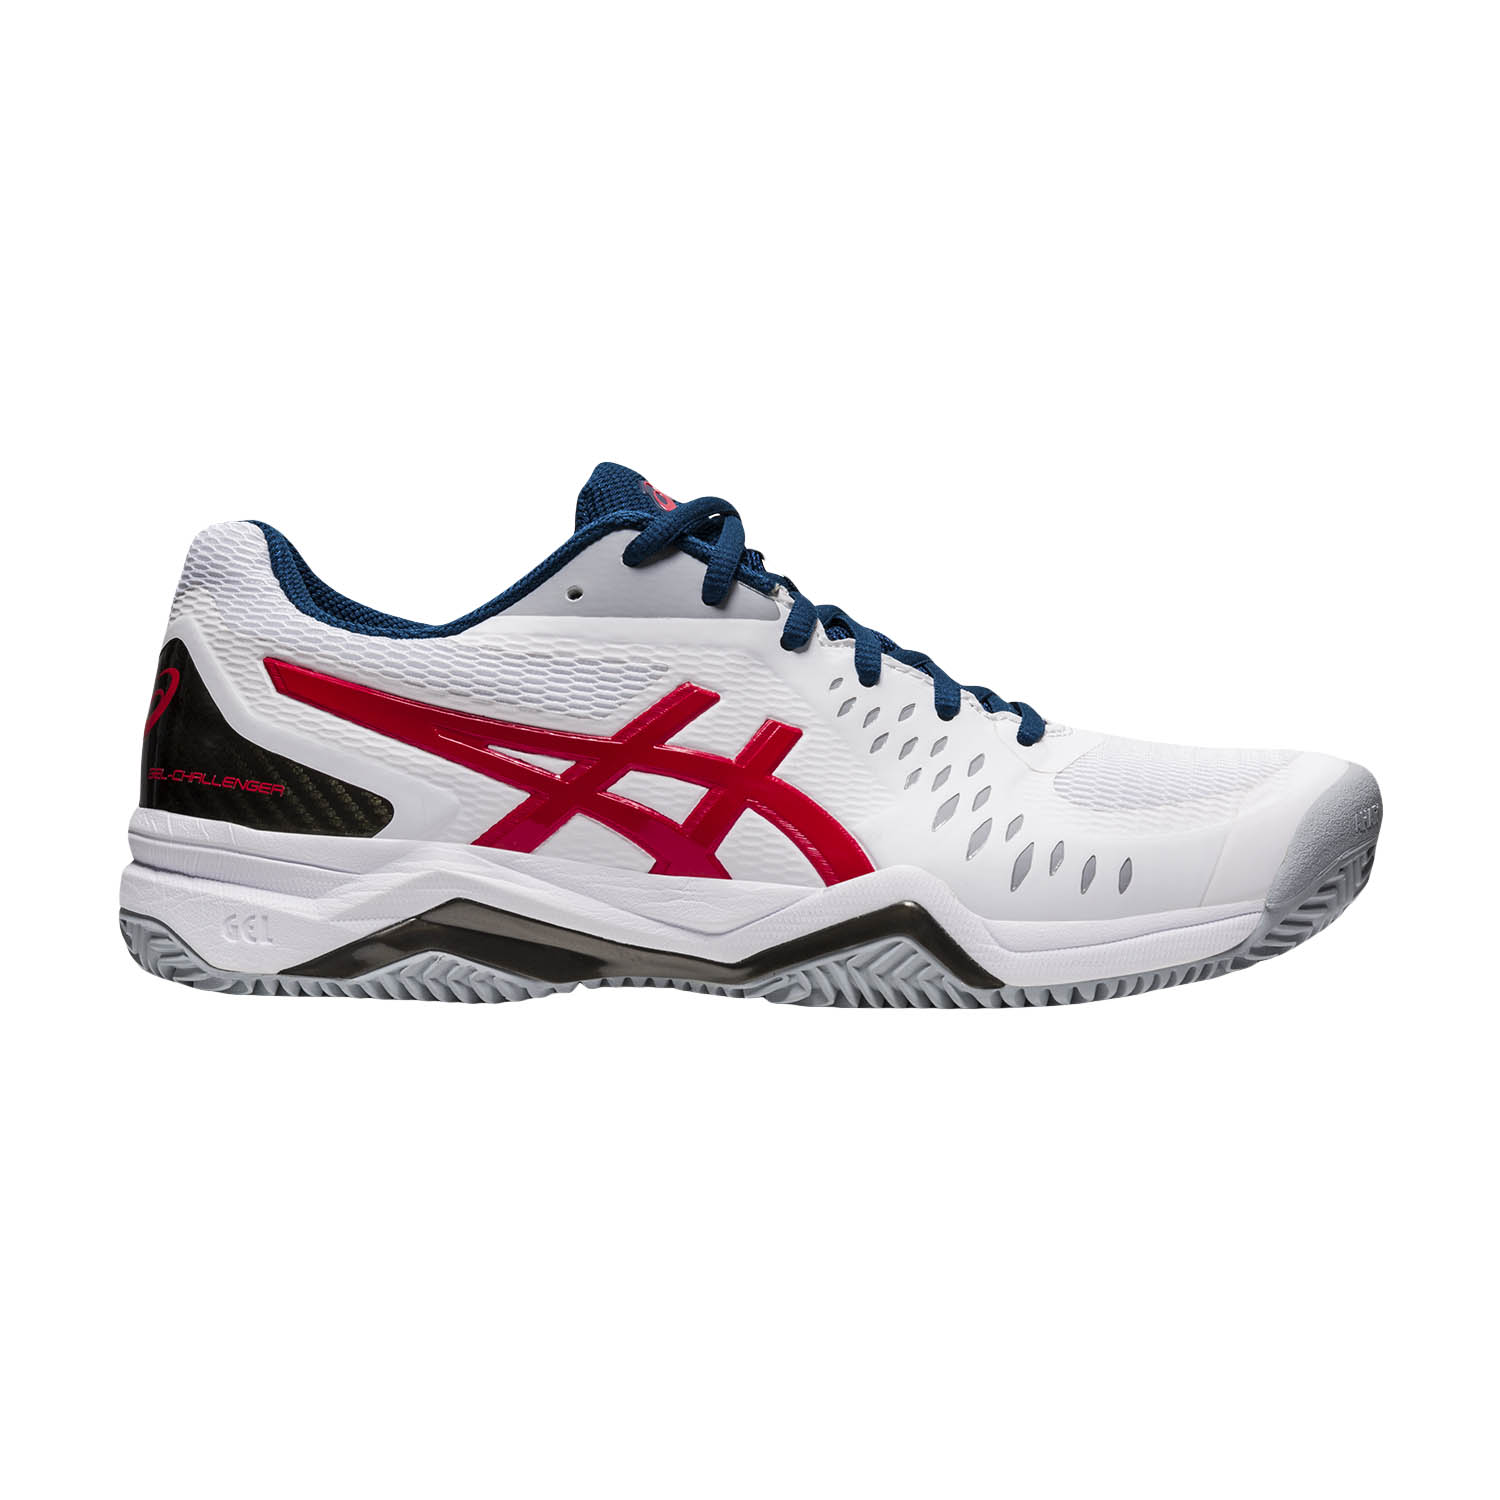 Asics Gel Challenger 12 Clay - White/Classic Red